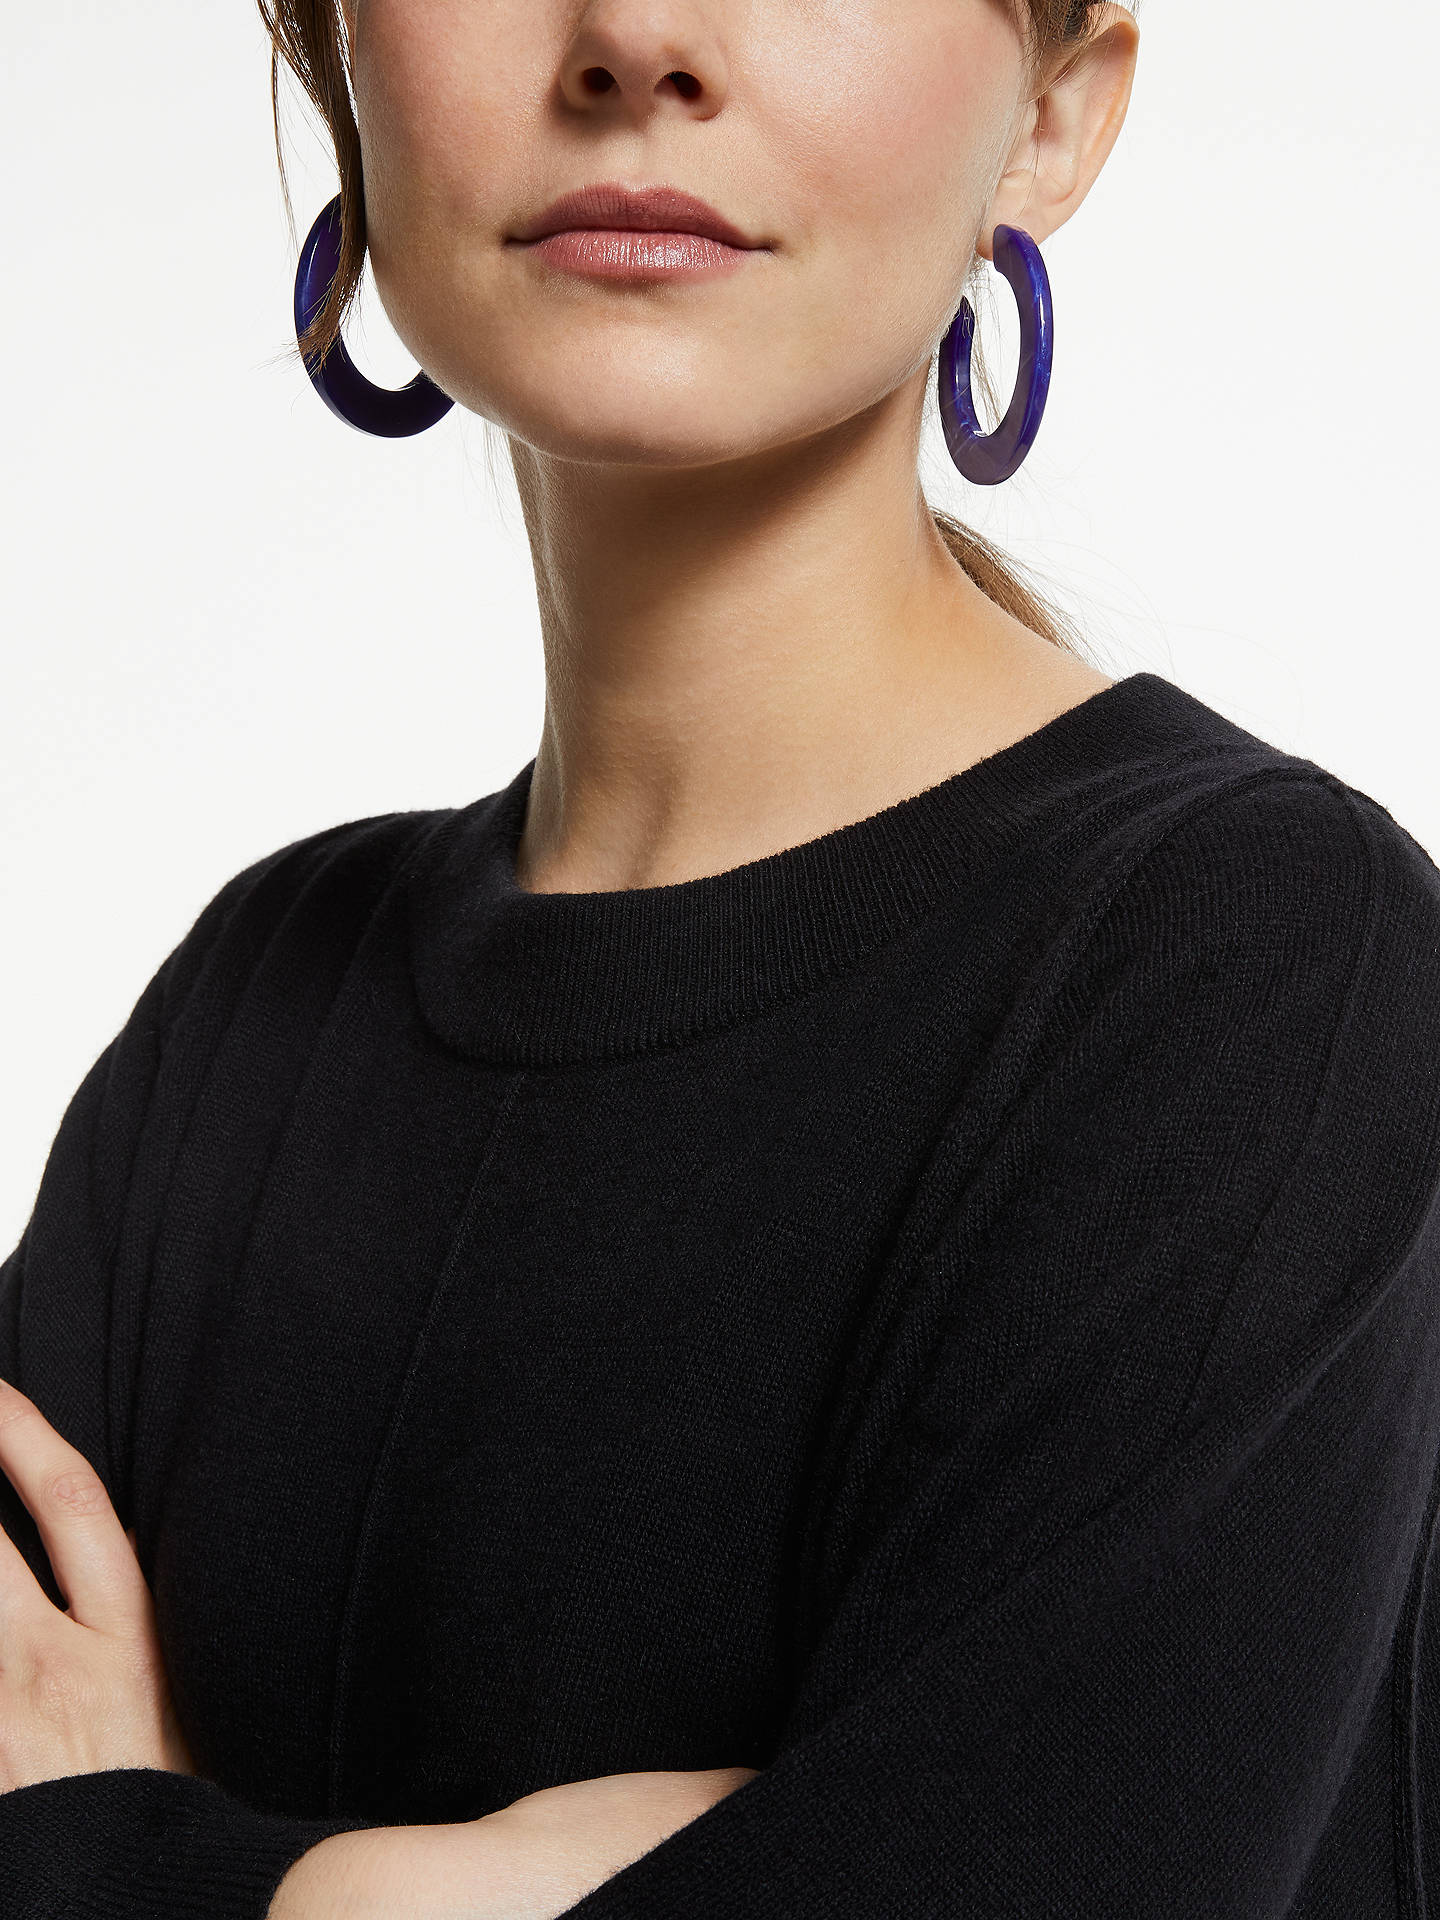 Buy John Lewis & Partners Resin Hoop Earrings, Blue Marble Online at johnlewis.com